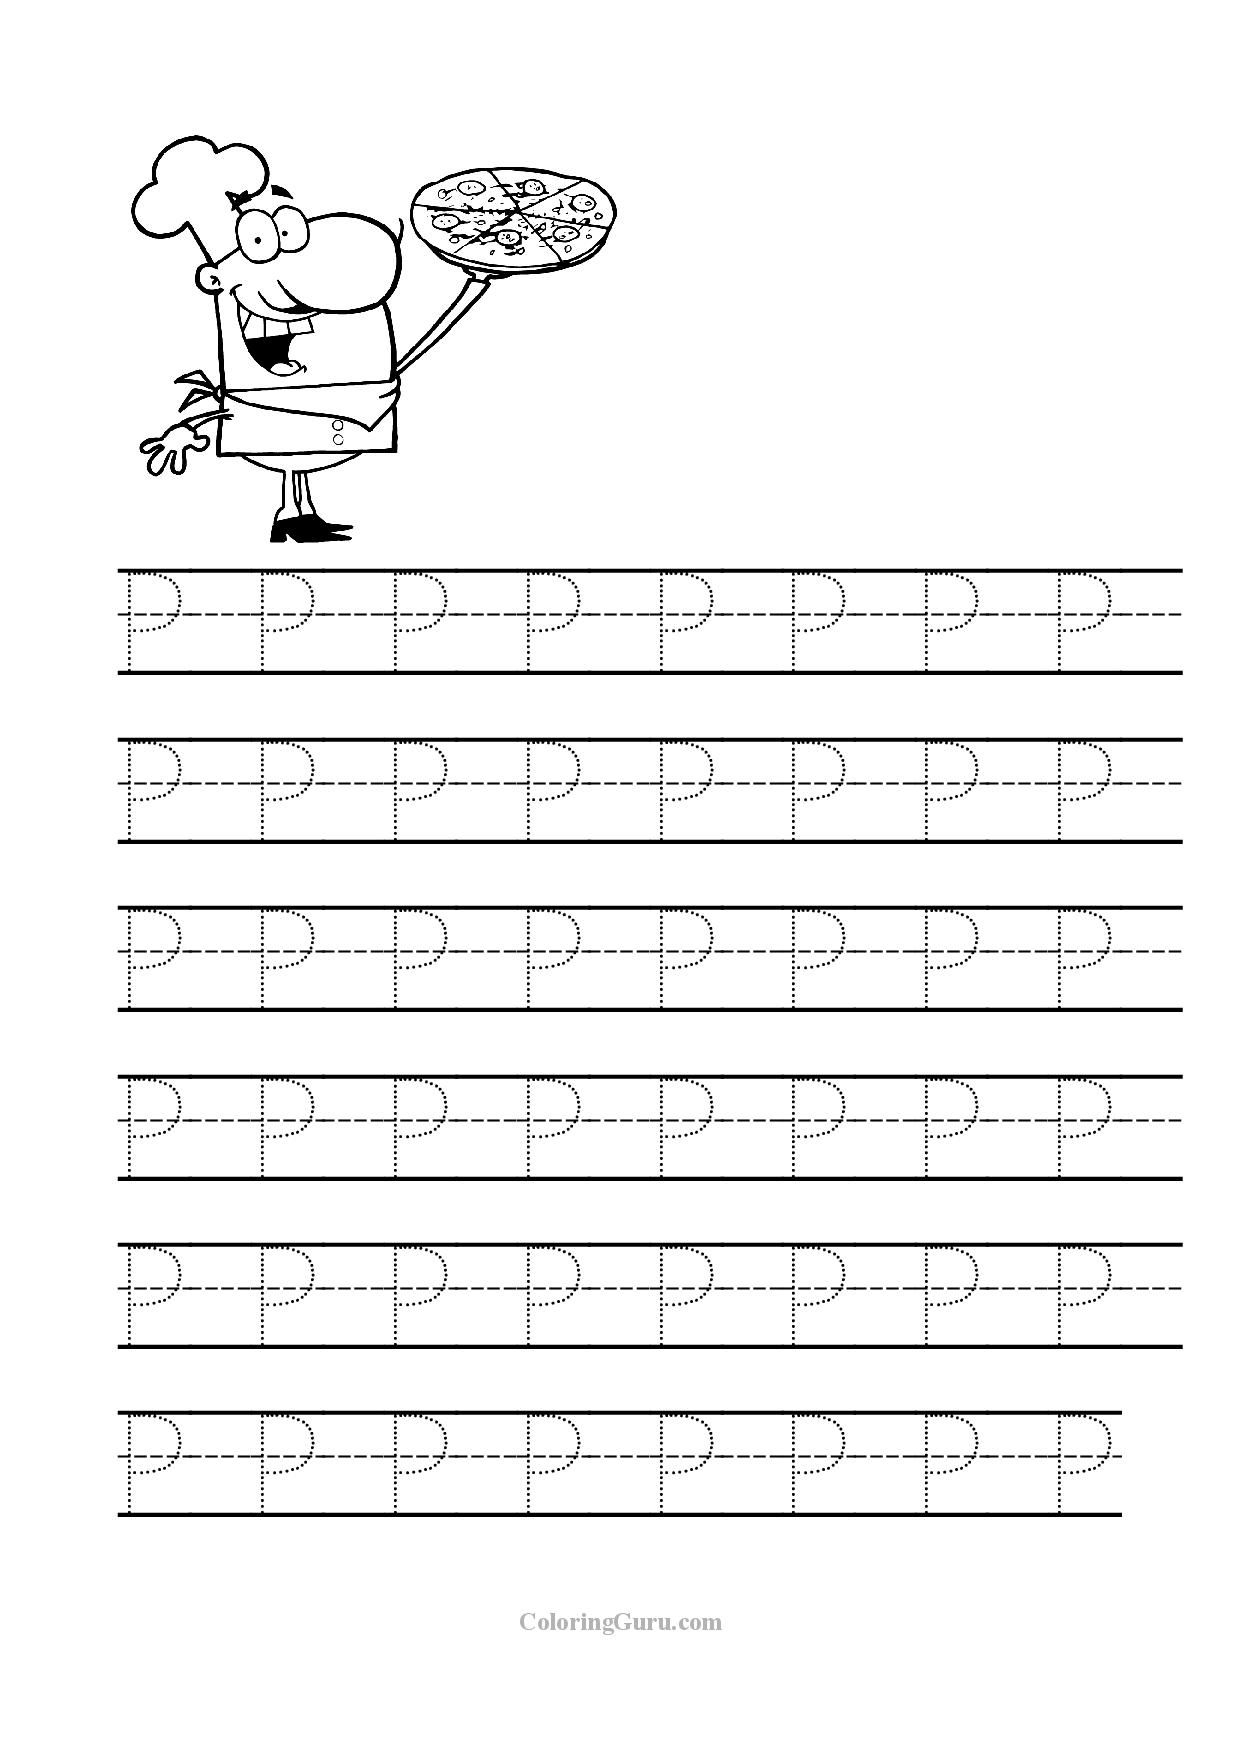 Free Printable Tracing Letter P Worksheets For Preschool for Letter Tracing Worksheets For Preschoolers Free